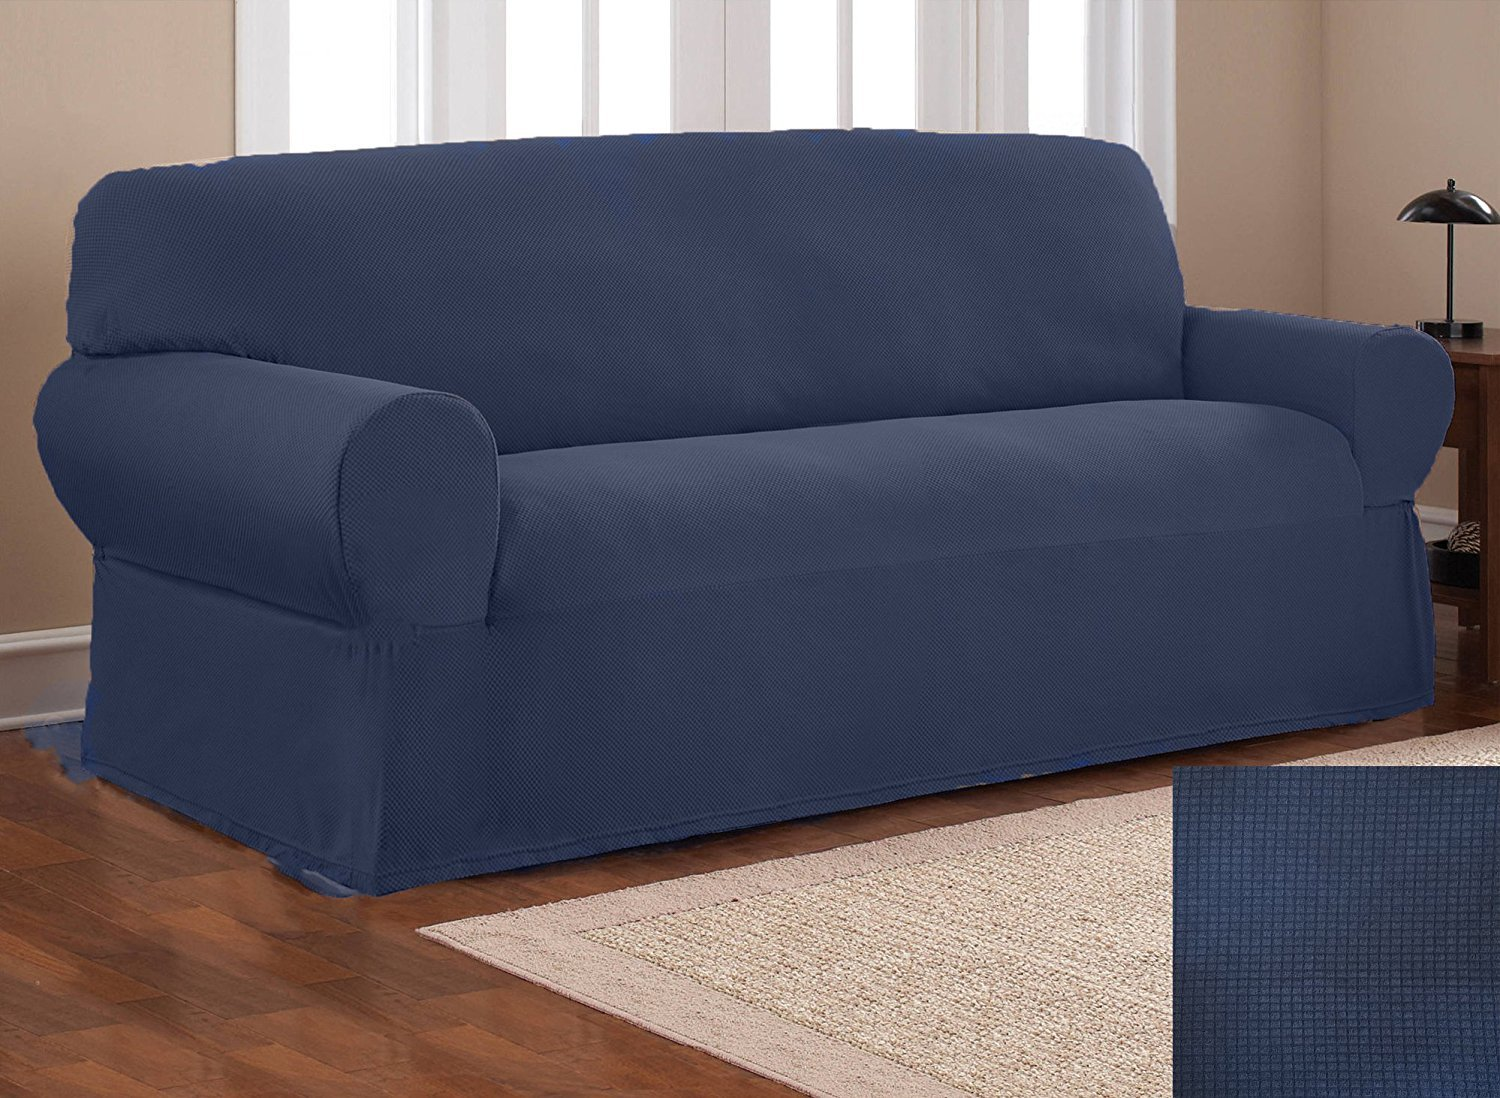 Fancy Collection Sure Fit Stretch Fabric Sofa Slipcover Sofa Cover Solid New #Stella (Navy Blue, 1 pc Sofa)